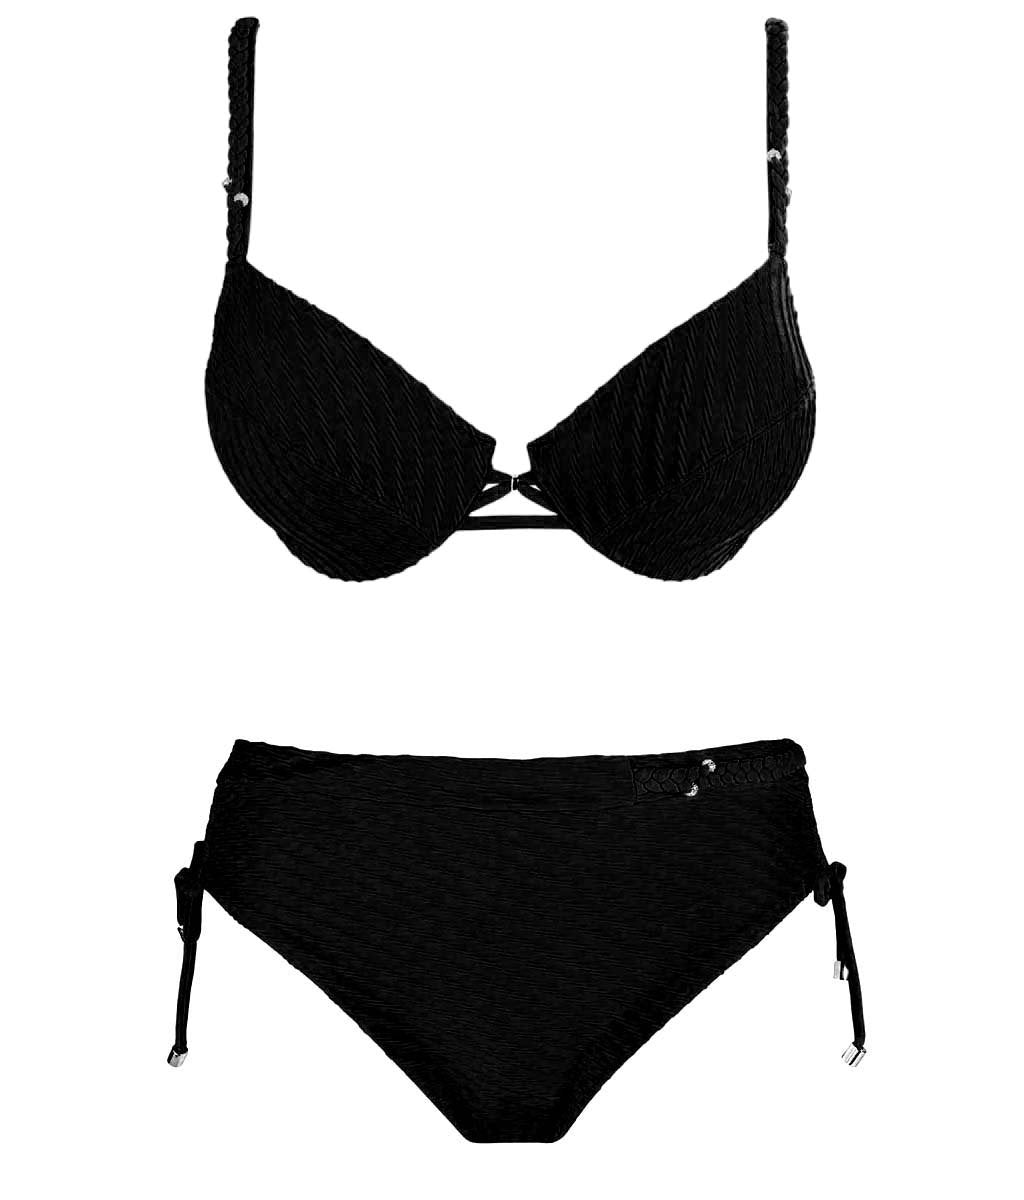 Lise Charmel 'Chic Tressage' (Noir) Underwired Bikini - Sandra Dee - Product Shot - Front